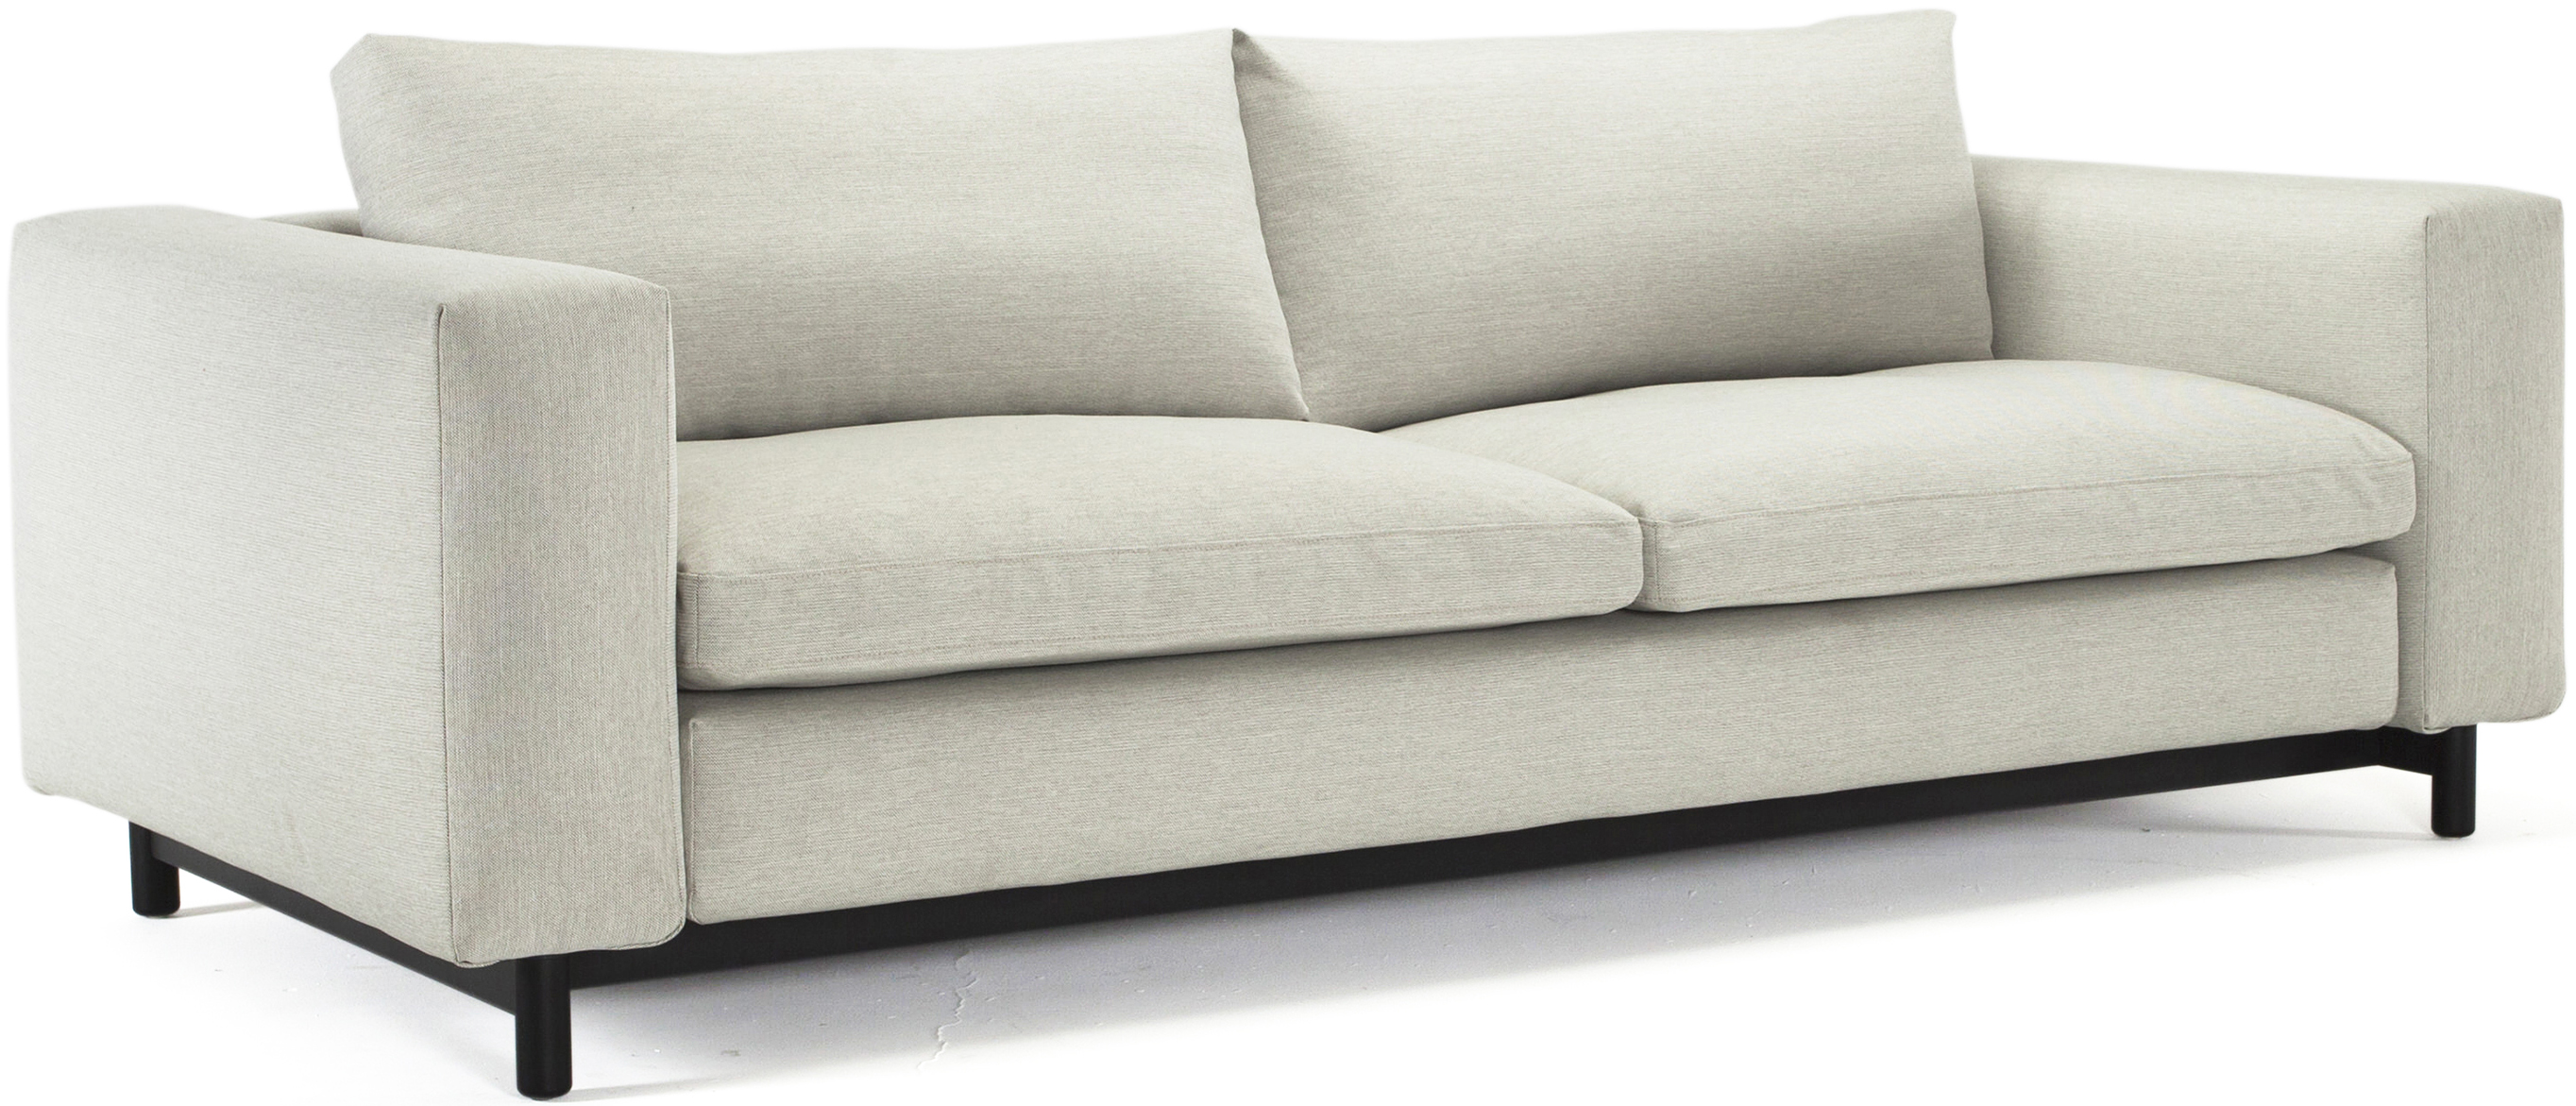 innovation living magni sofa